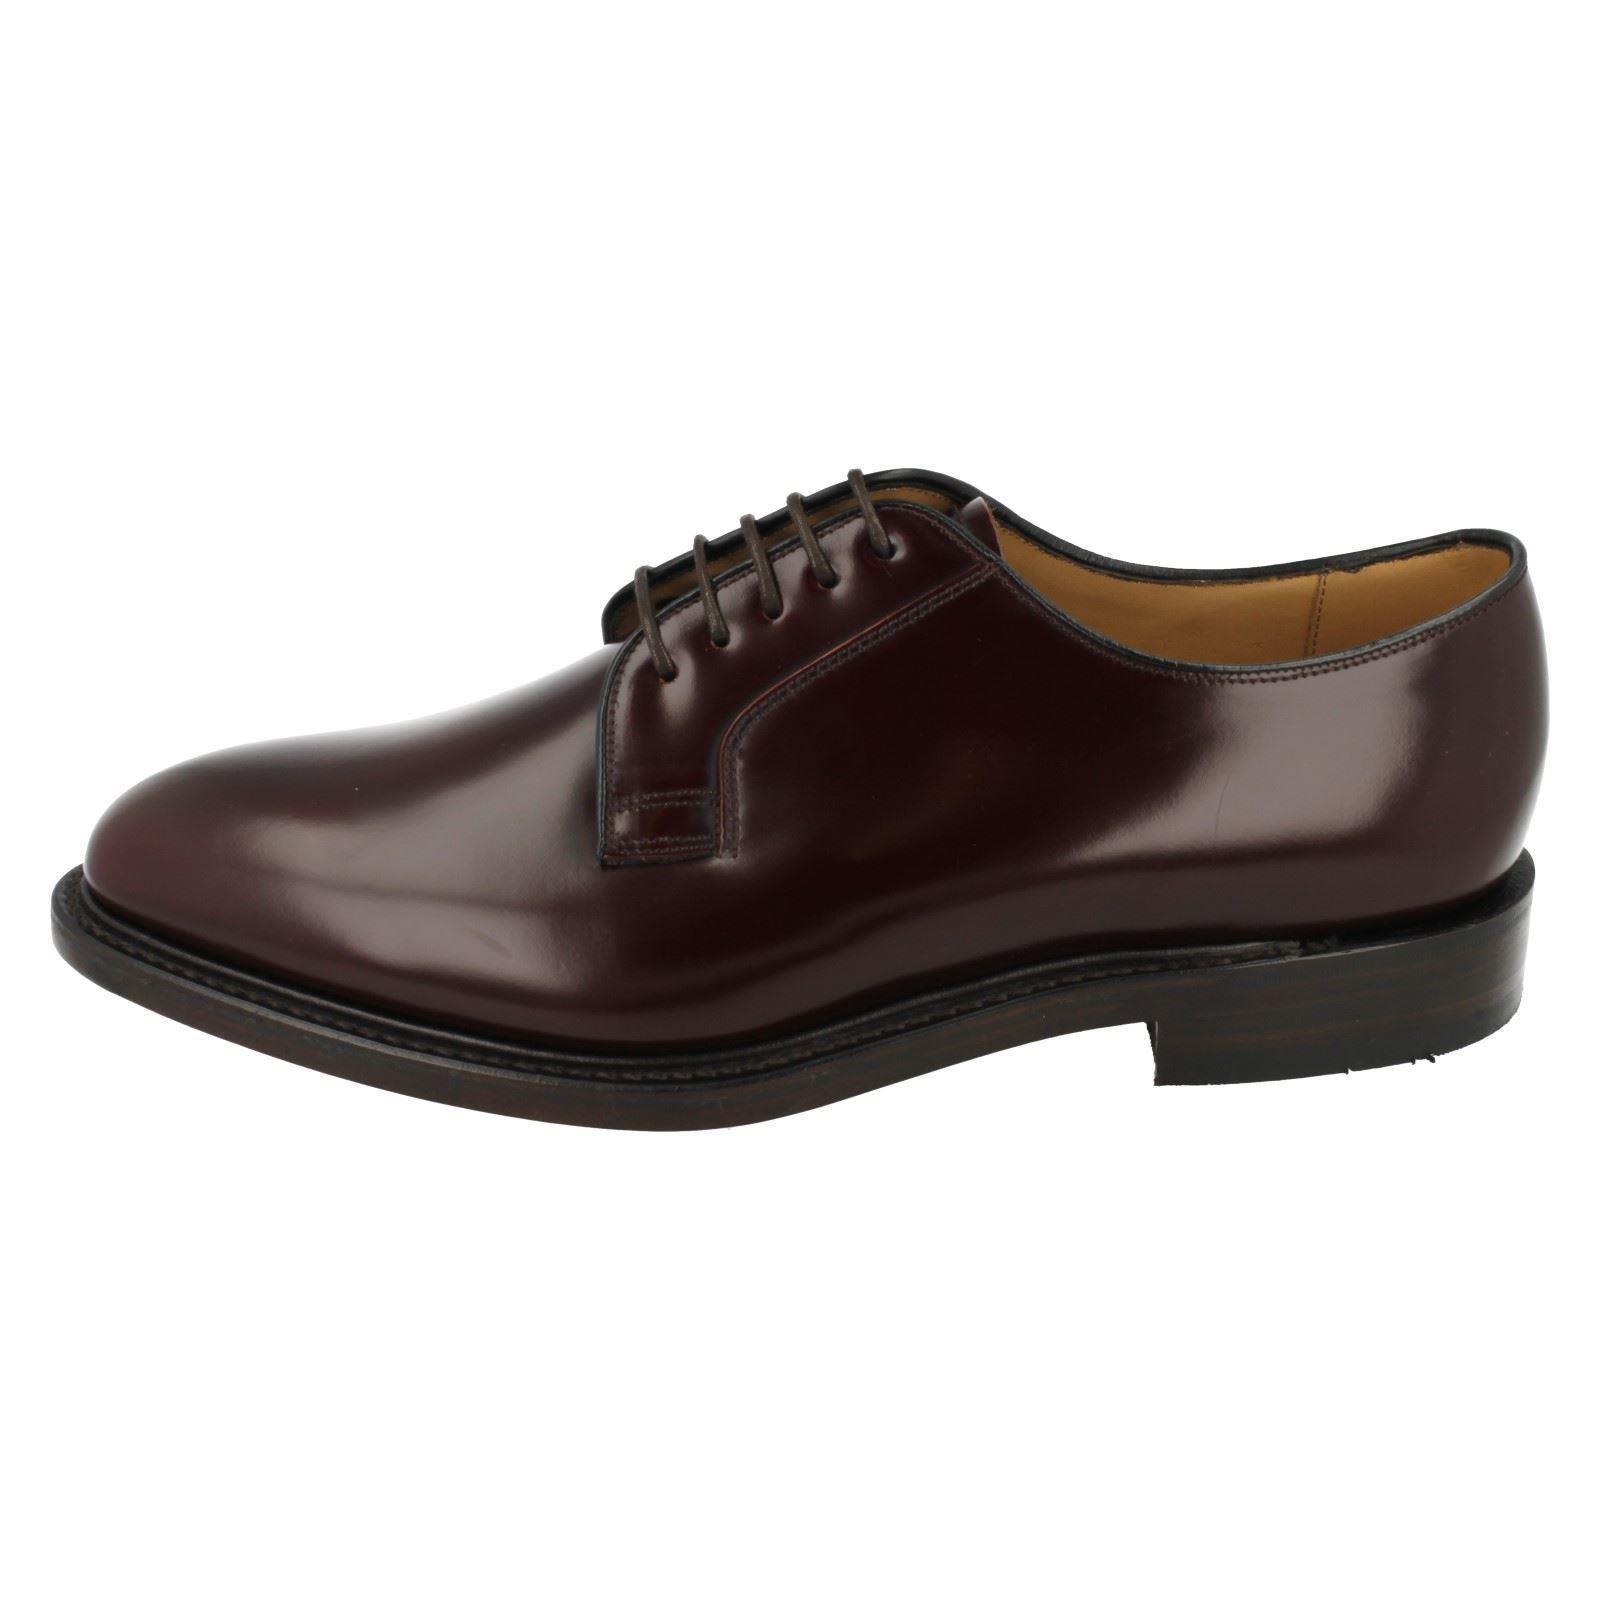 Uomo Loake Formal Leder F Fitting Schuhes the the the Style - 771 dbce9d